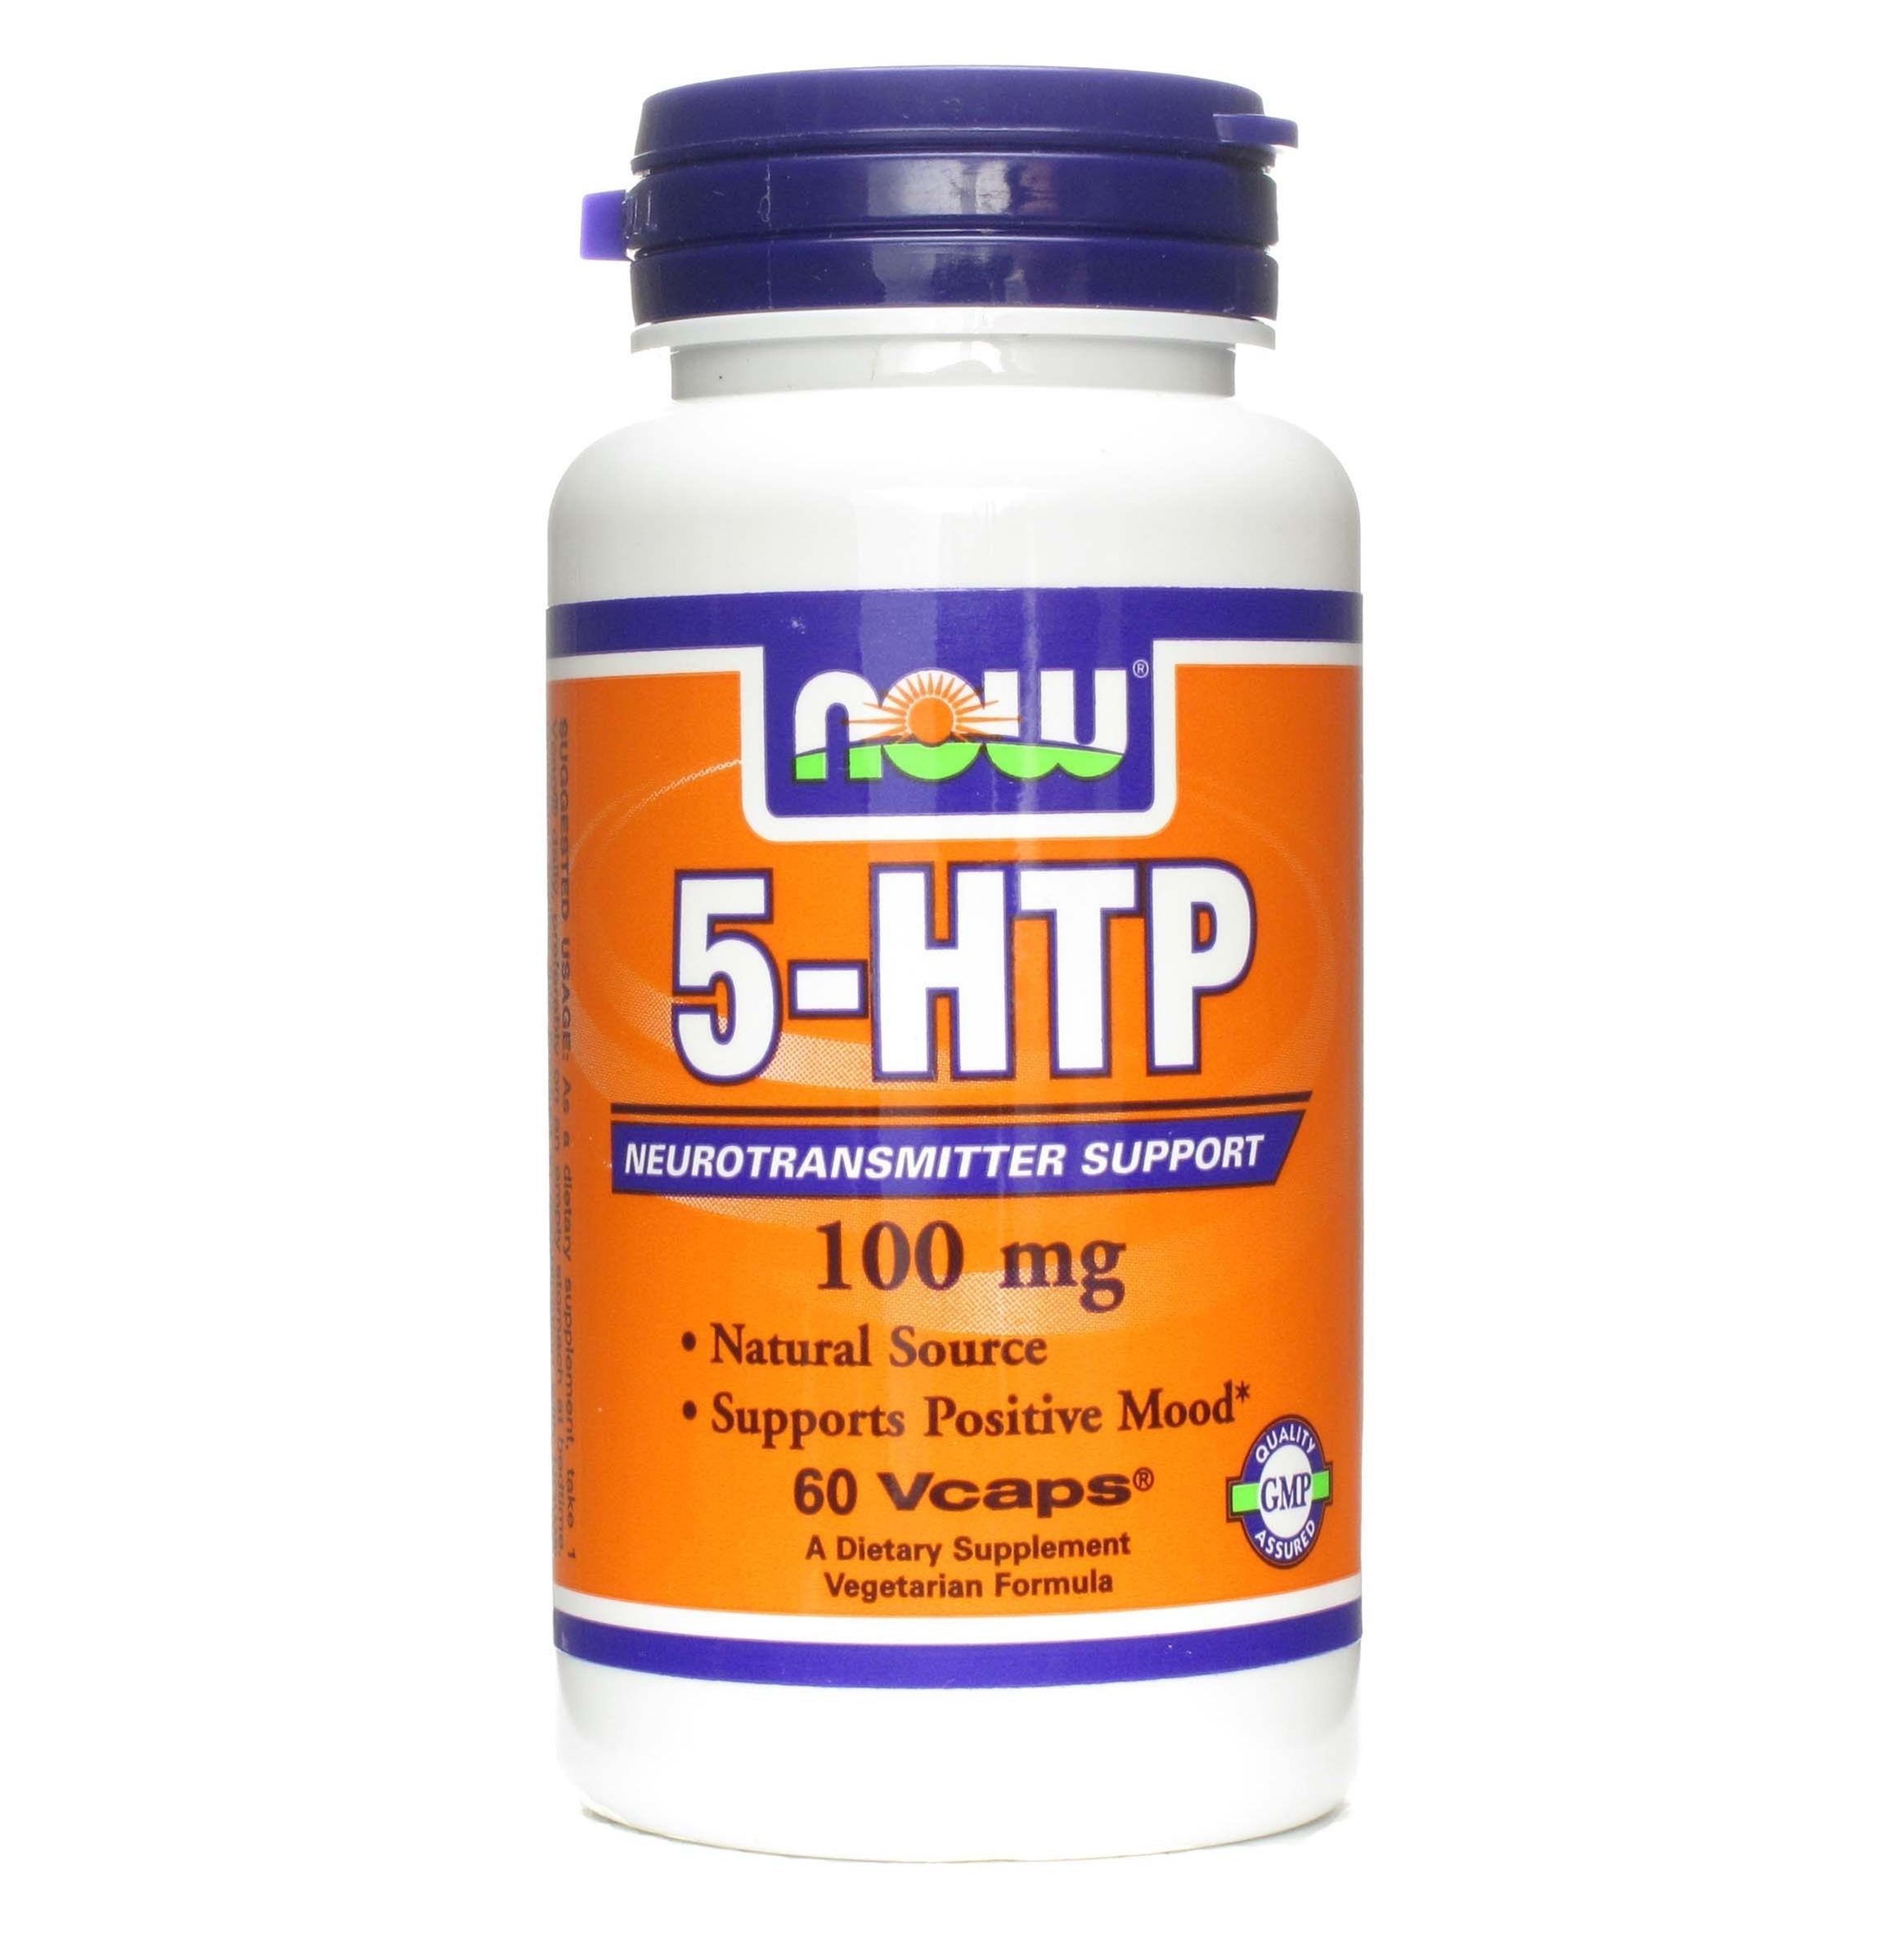 NOW 5-HTP 100mg Capsules